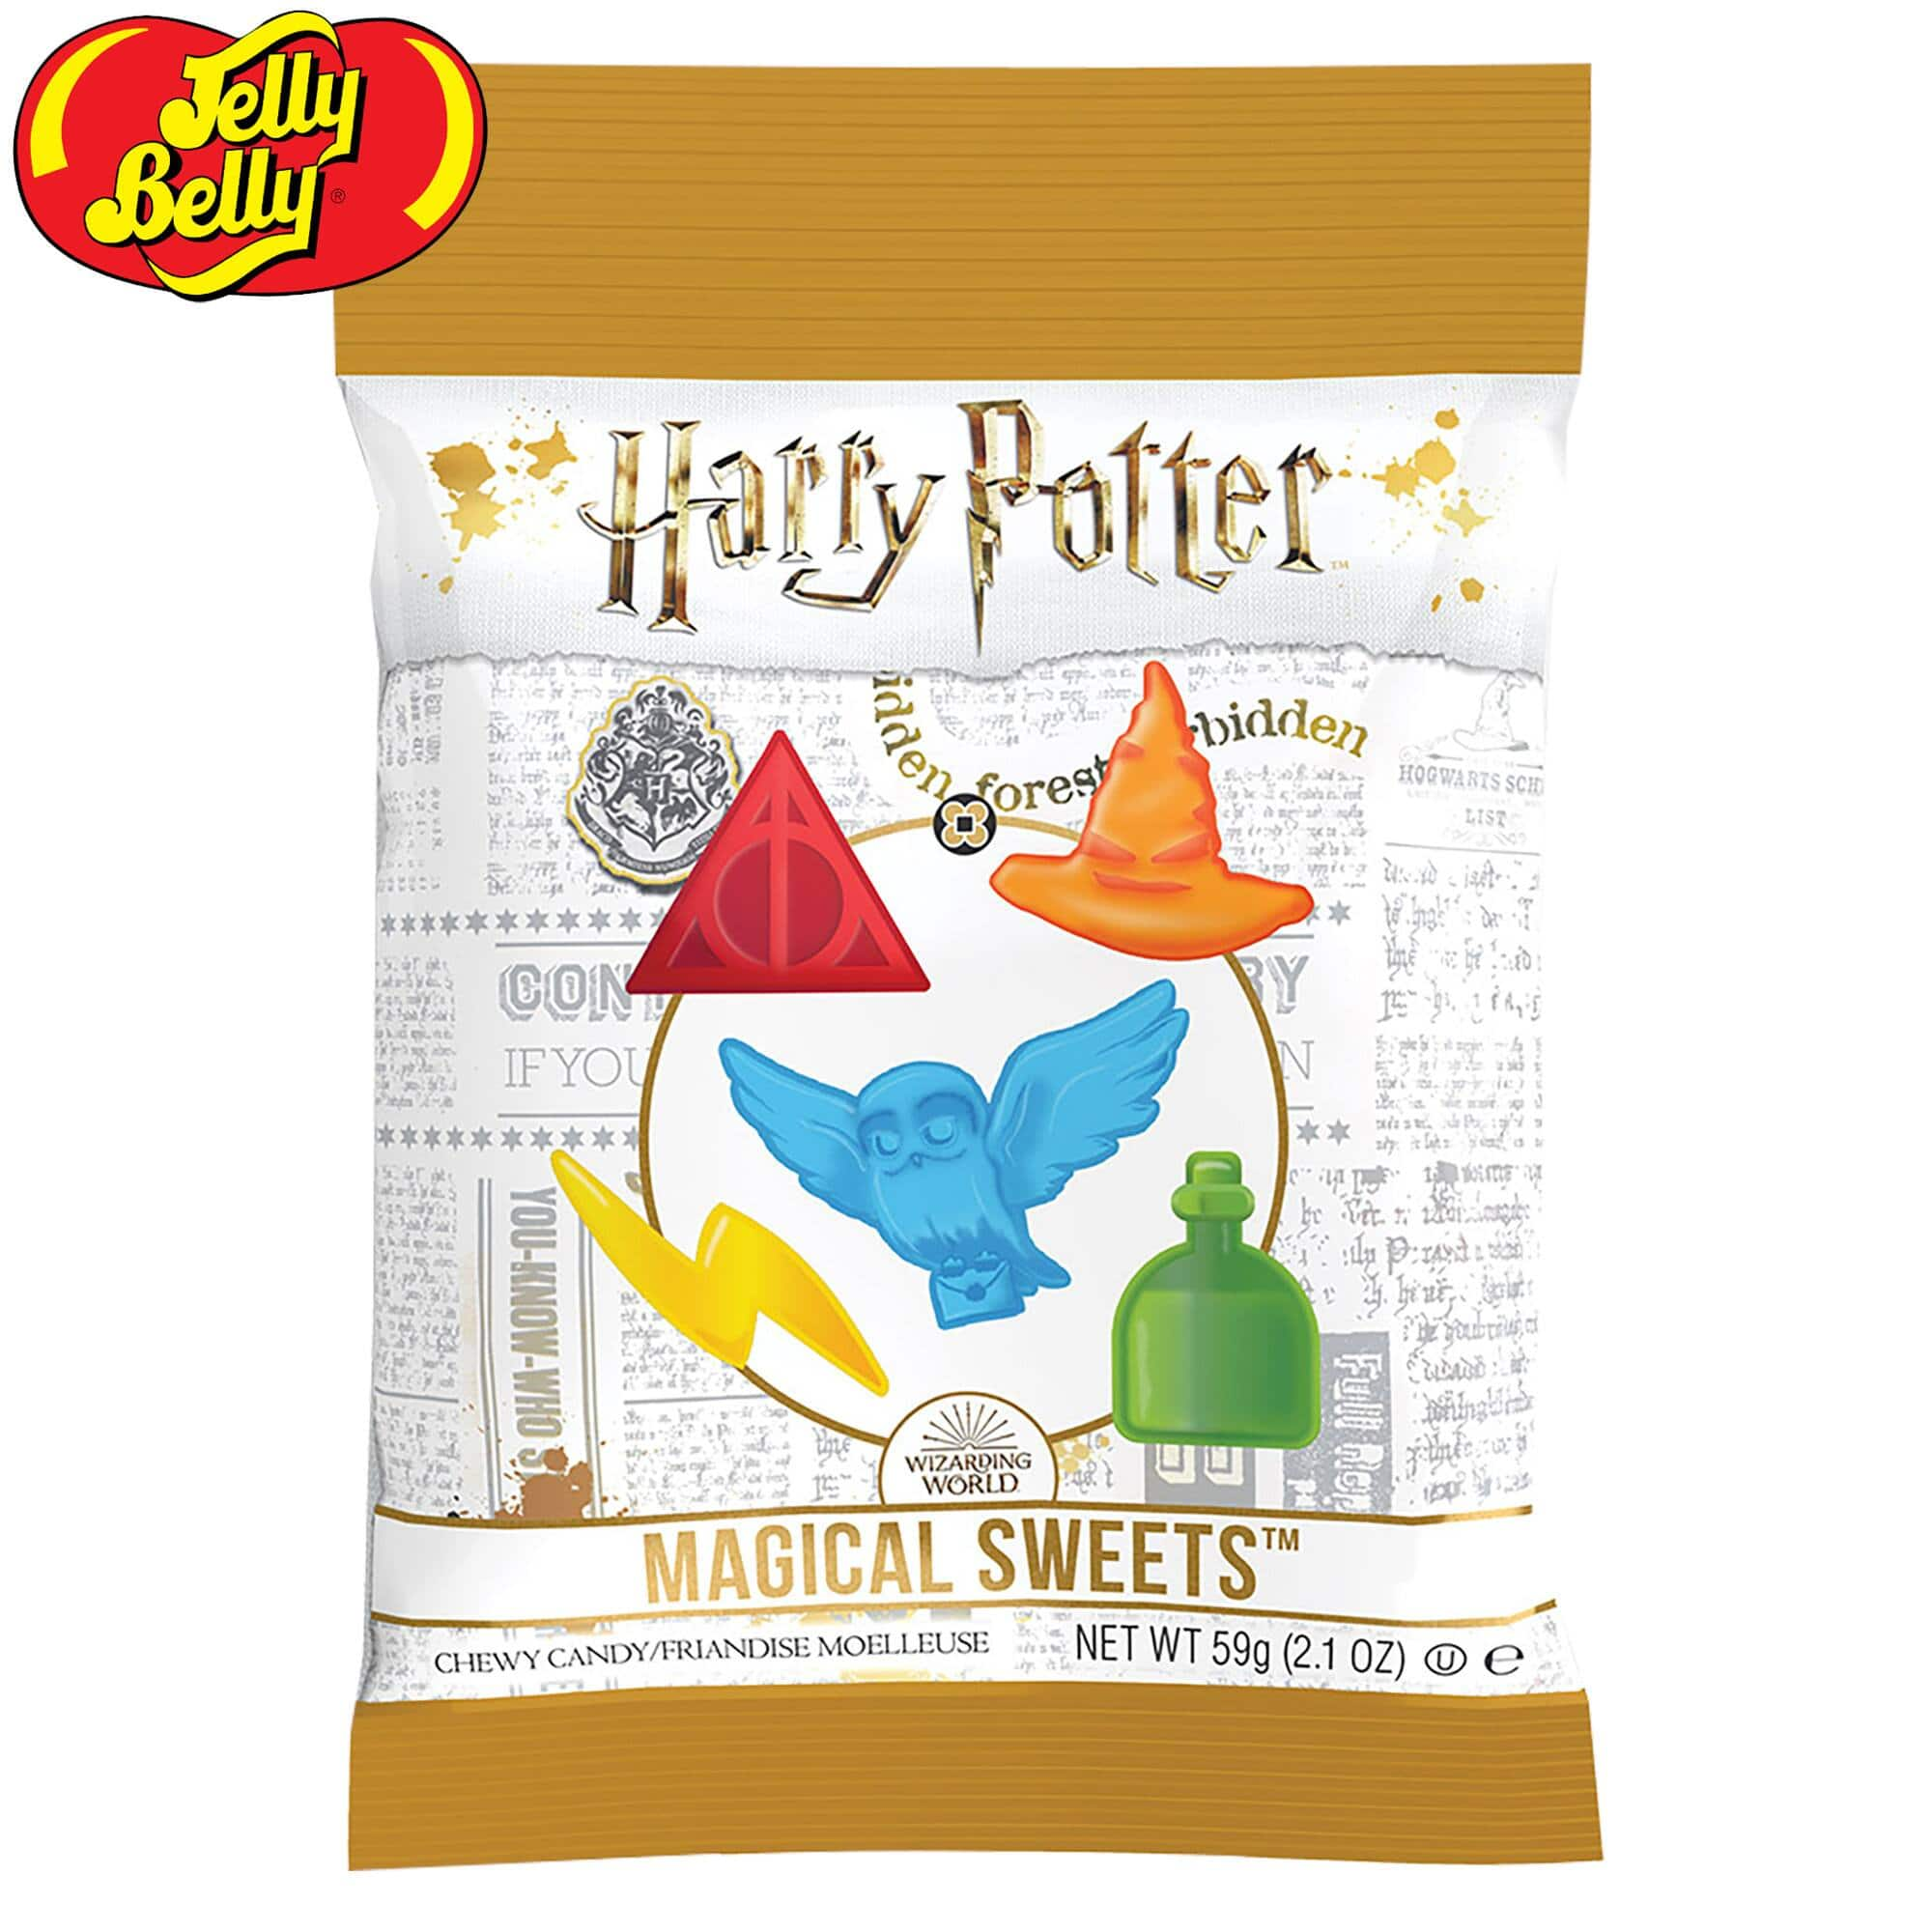 12-Pack: Jelly Belly Harry Potter Magical Sweets Chewy Gummies - $14 + Free Shipping